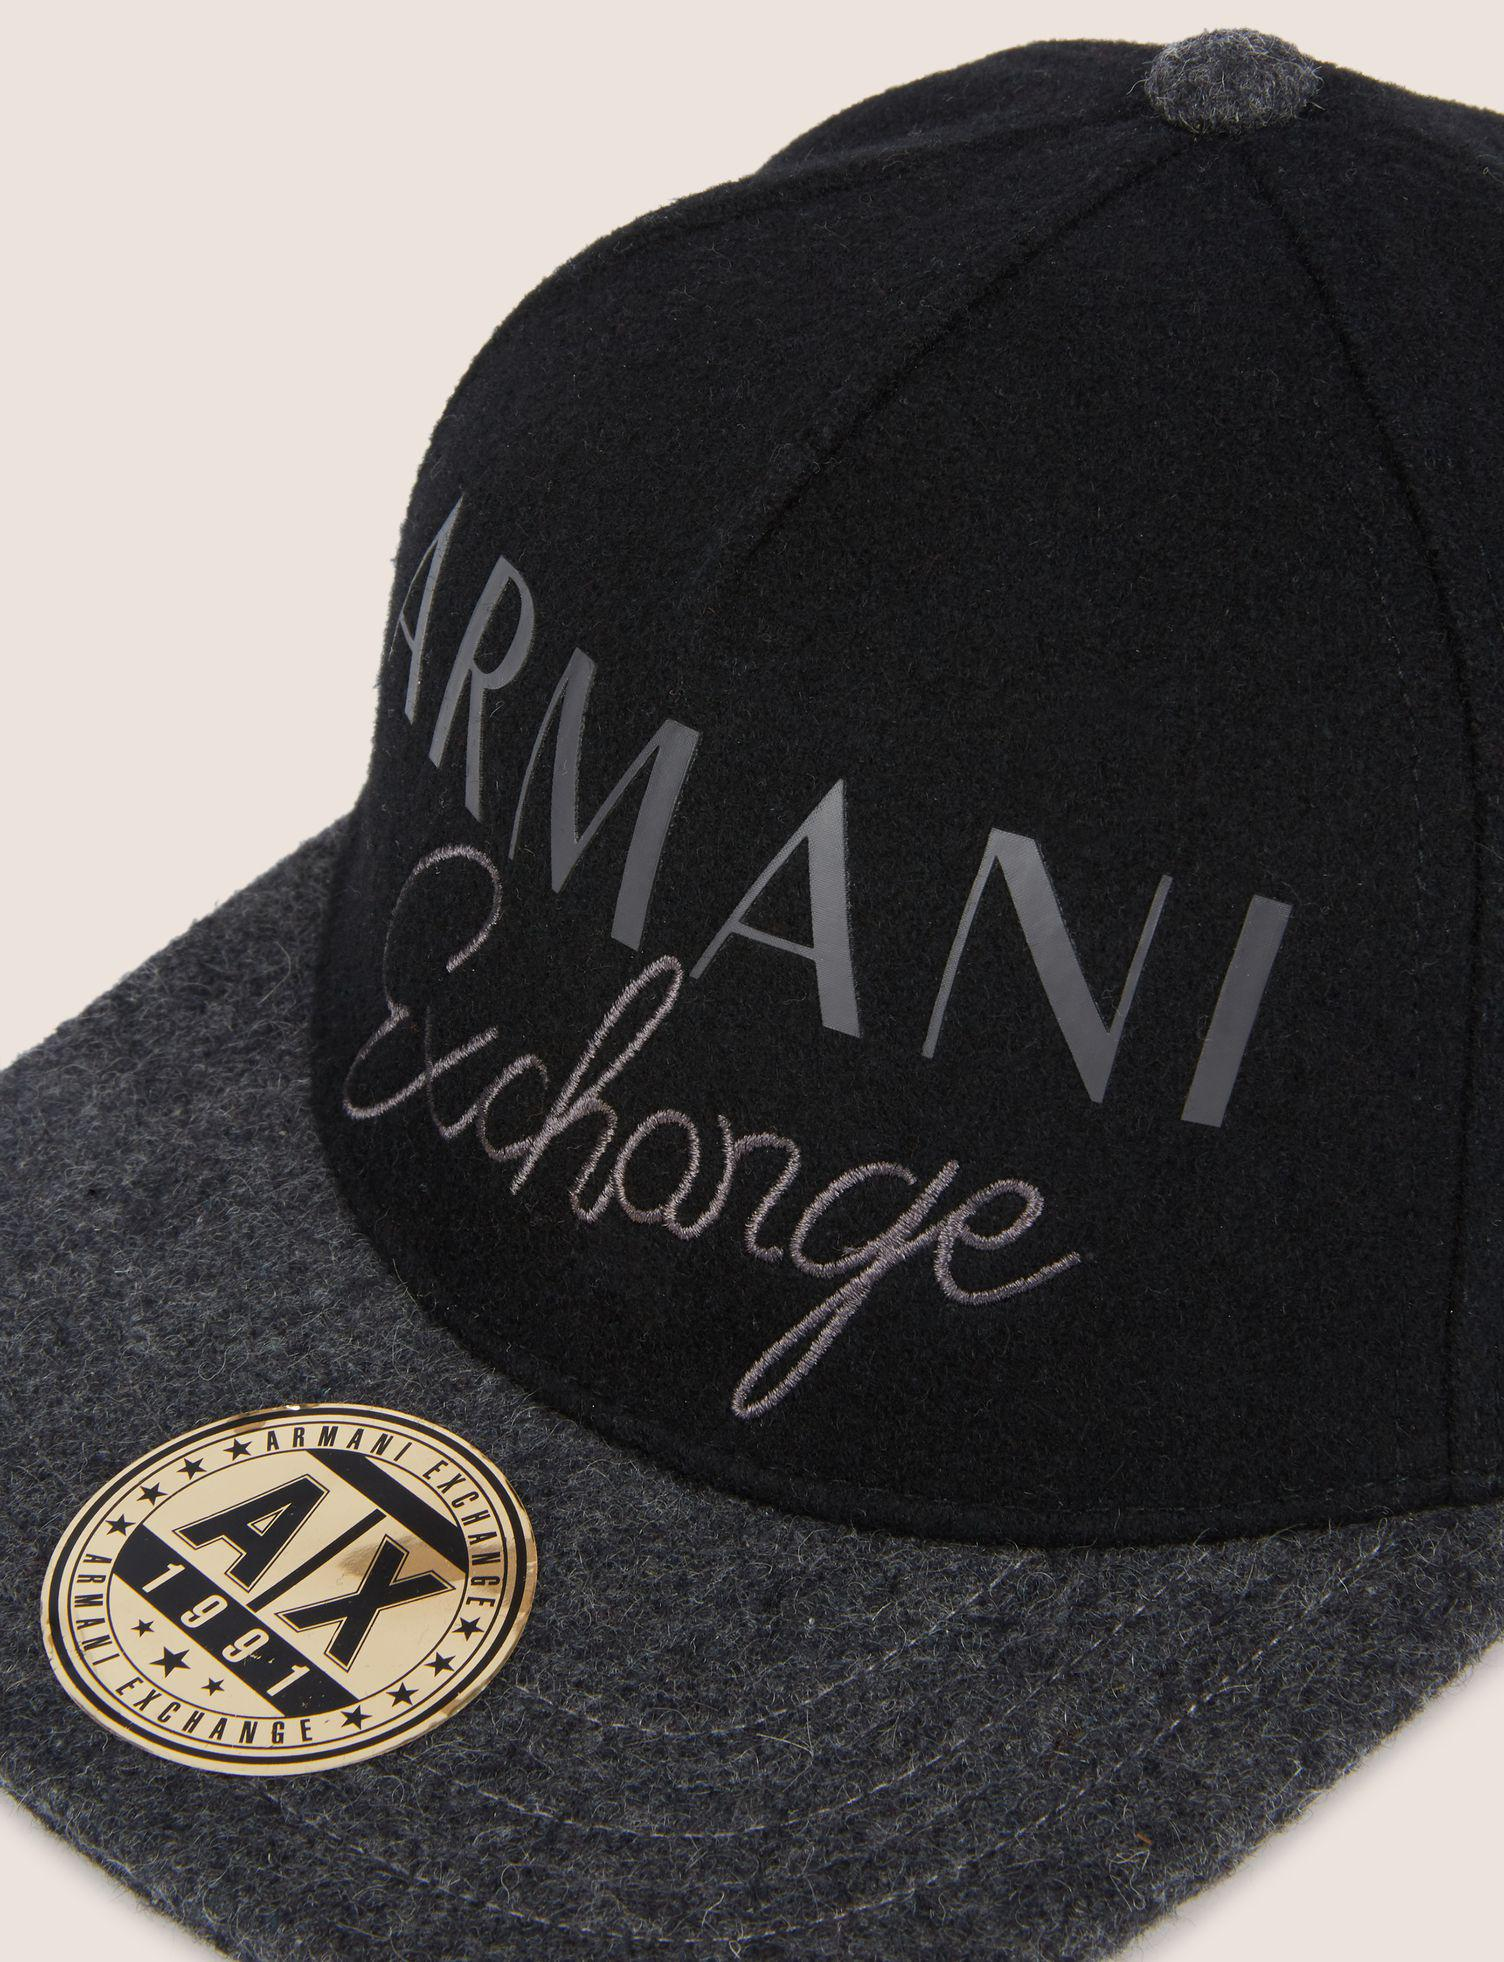 3eda012170e Lyst - Armani Exchange Embroidered Script Logo Hat in Black for Men